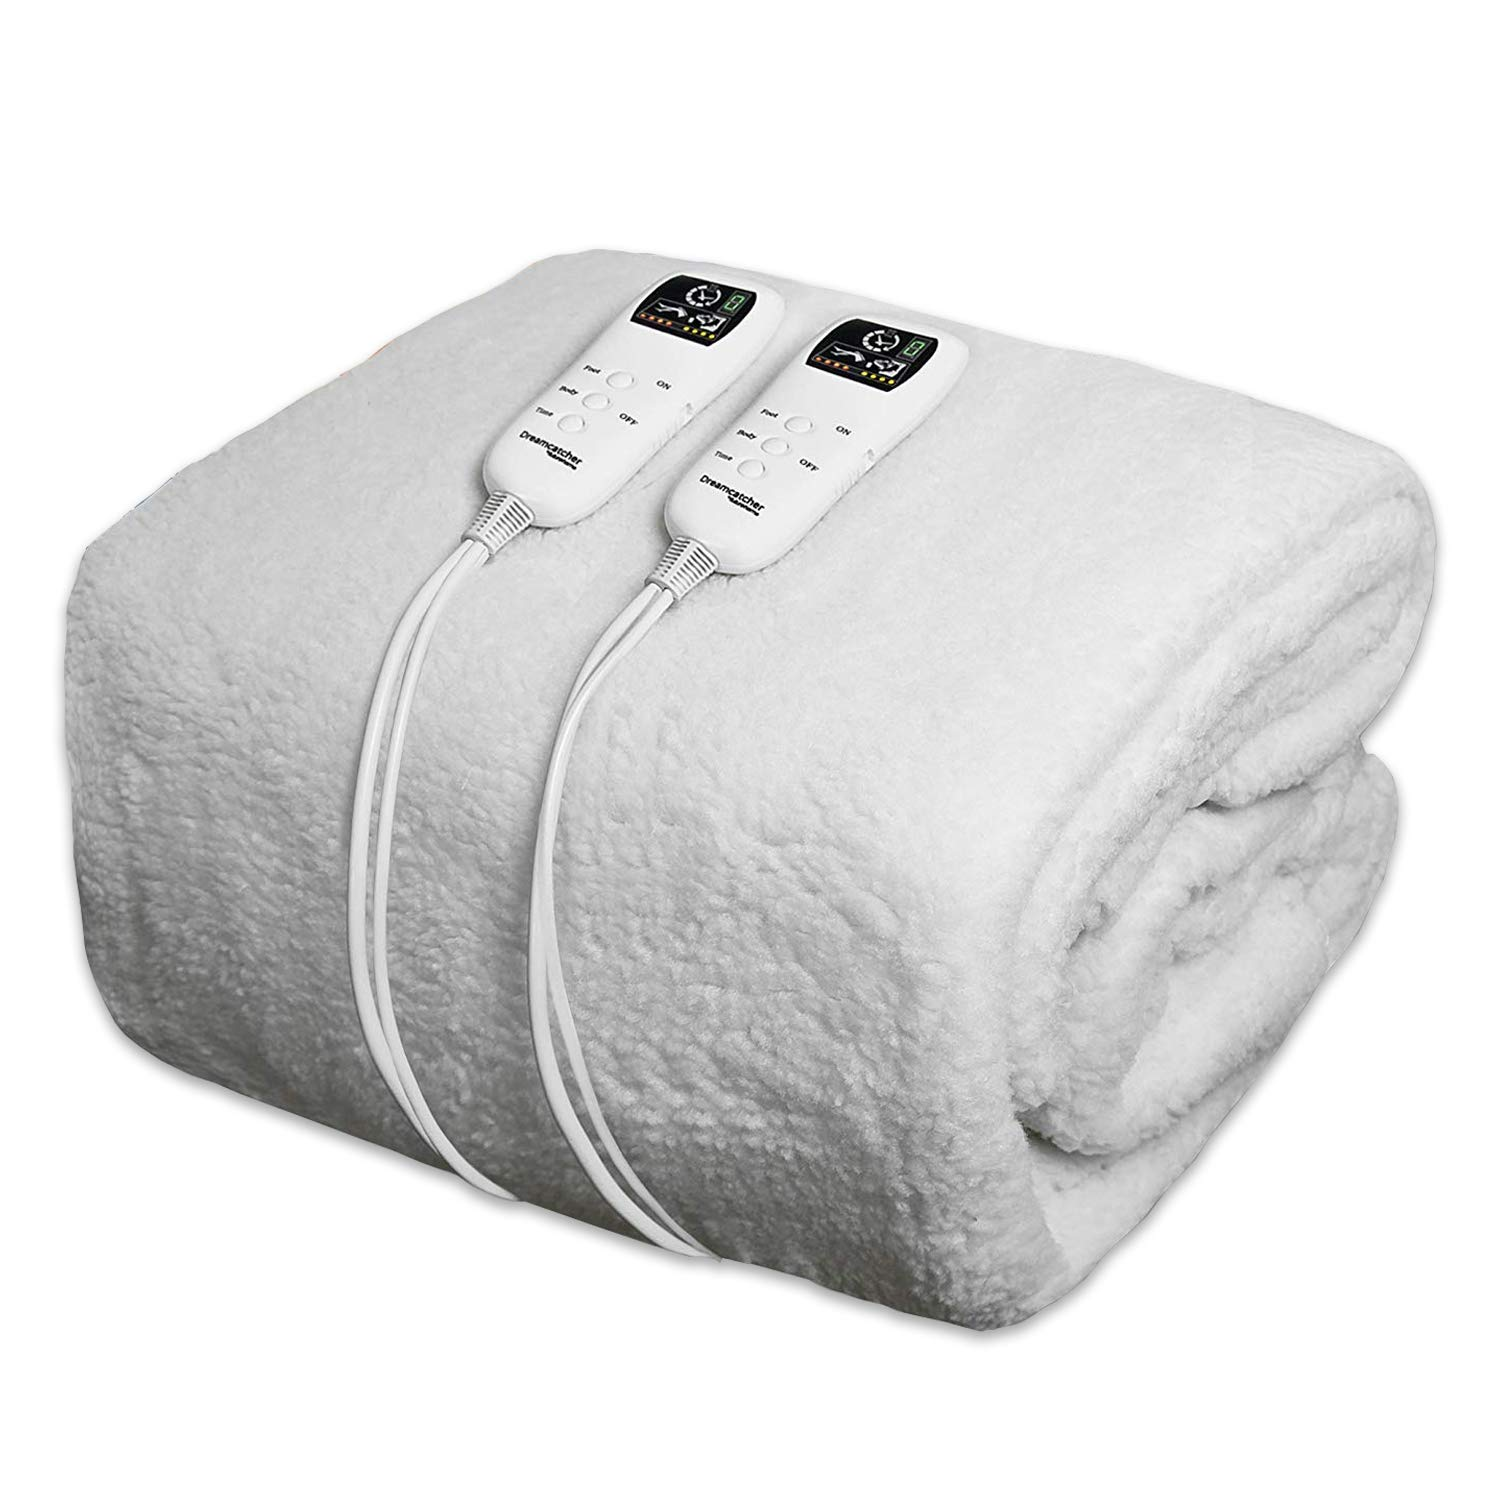 Dreamcatcher Super King Electric Blanket Premium Polar Fleece, SuperKing Size Bed 203 x 182cm, Electric Heated Blanket, Soft Fitted Underblanket with Dual LED Controllers, 8 Comfort settings, Timer Functionality and Machine Washable